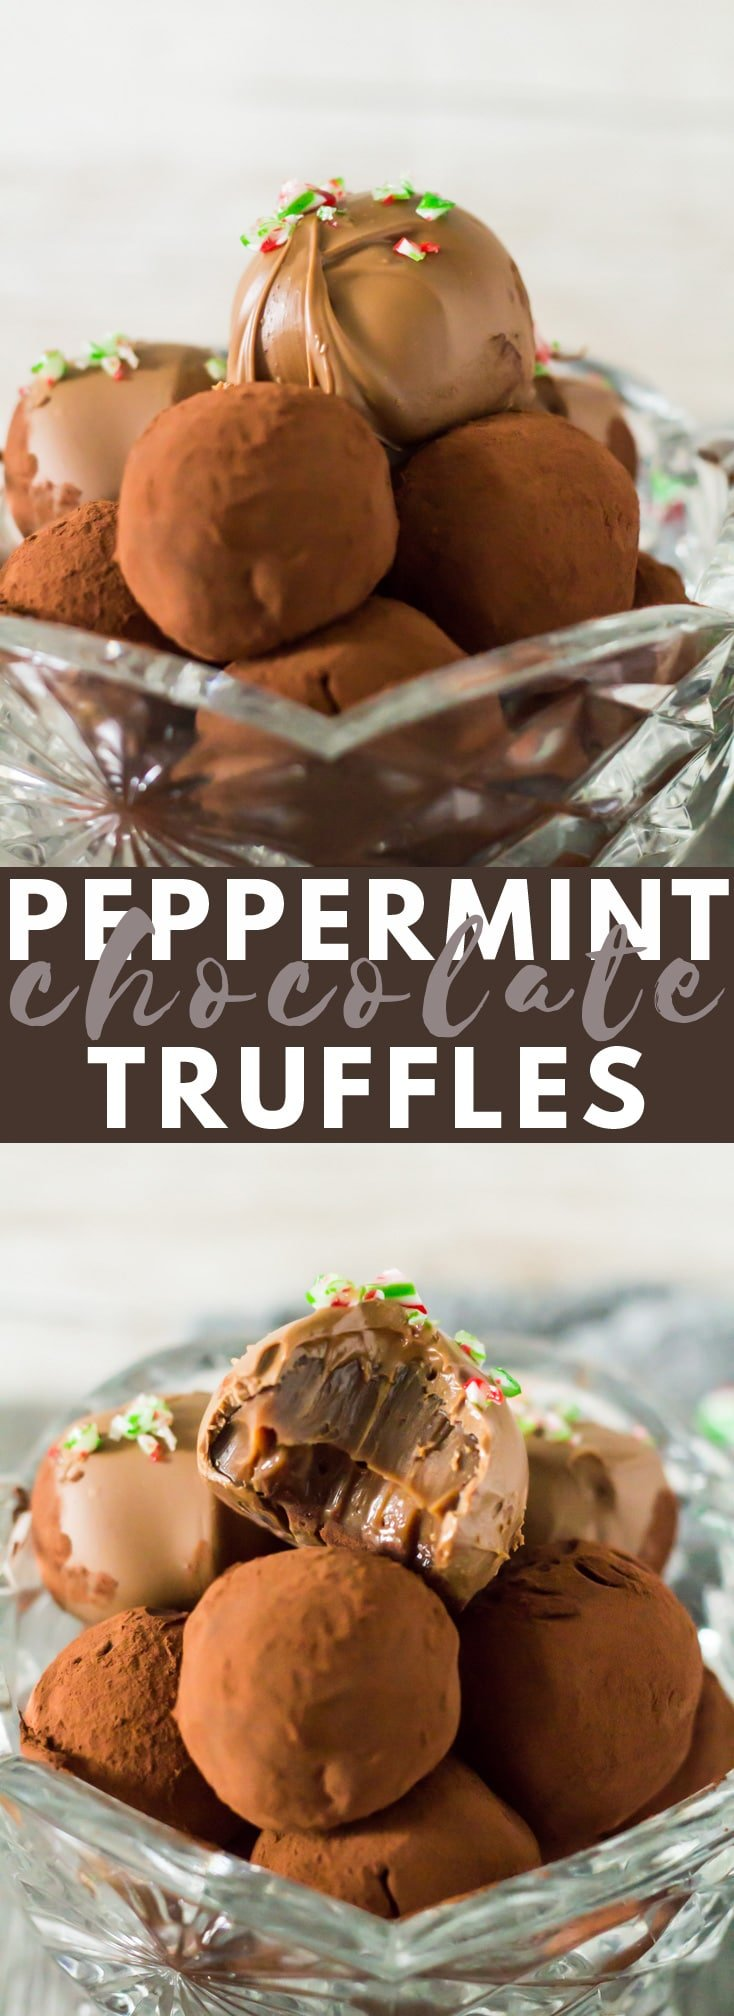 Peppermint Chocolate Truffles